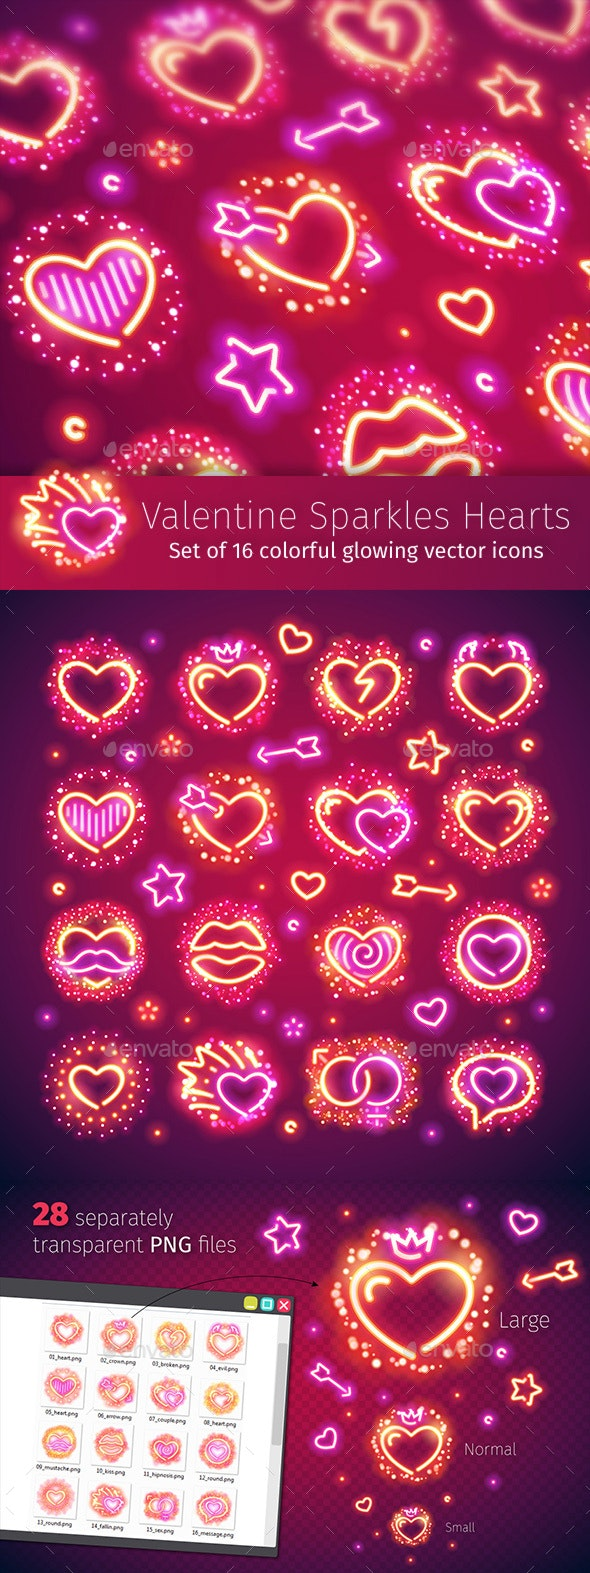 Valentine Hearts with Sparkles